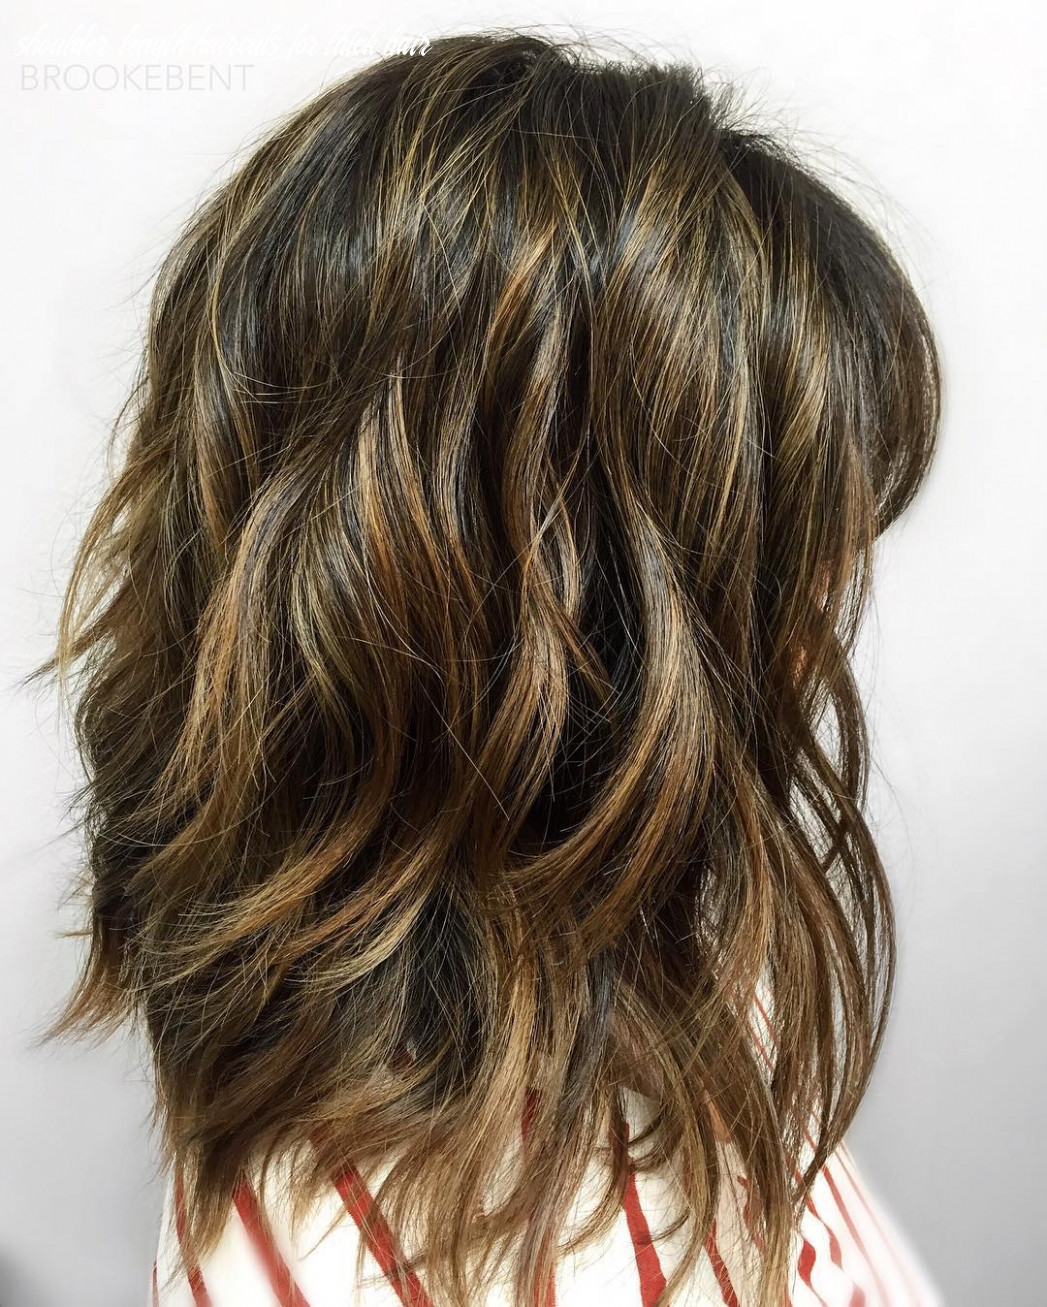 Medium short length hairstyles for thick hair shoulder length haircuts for thick hair